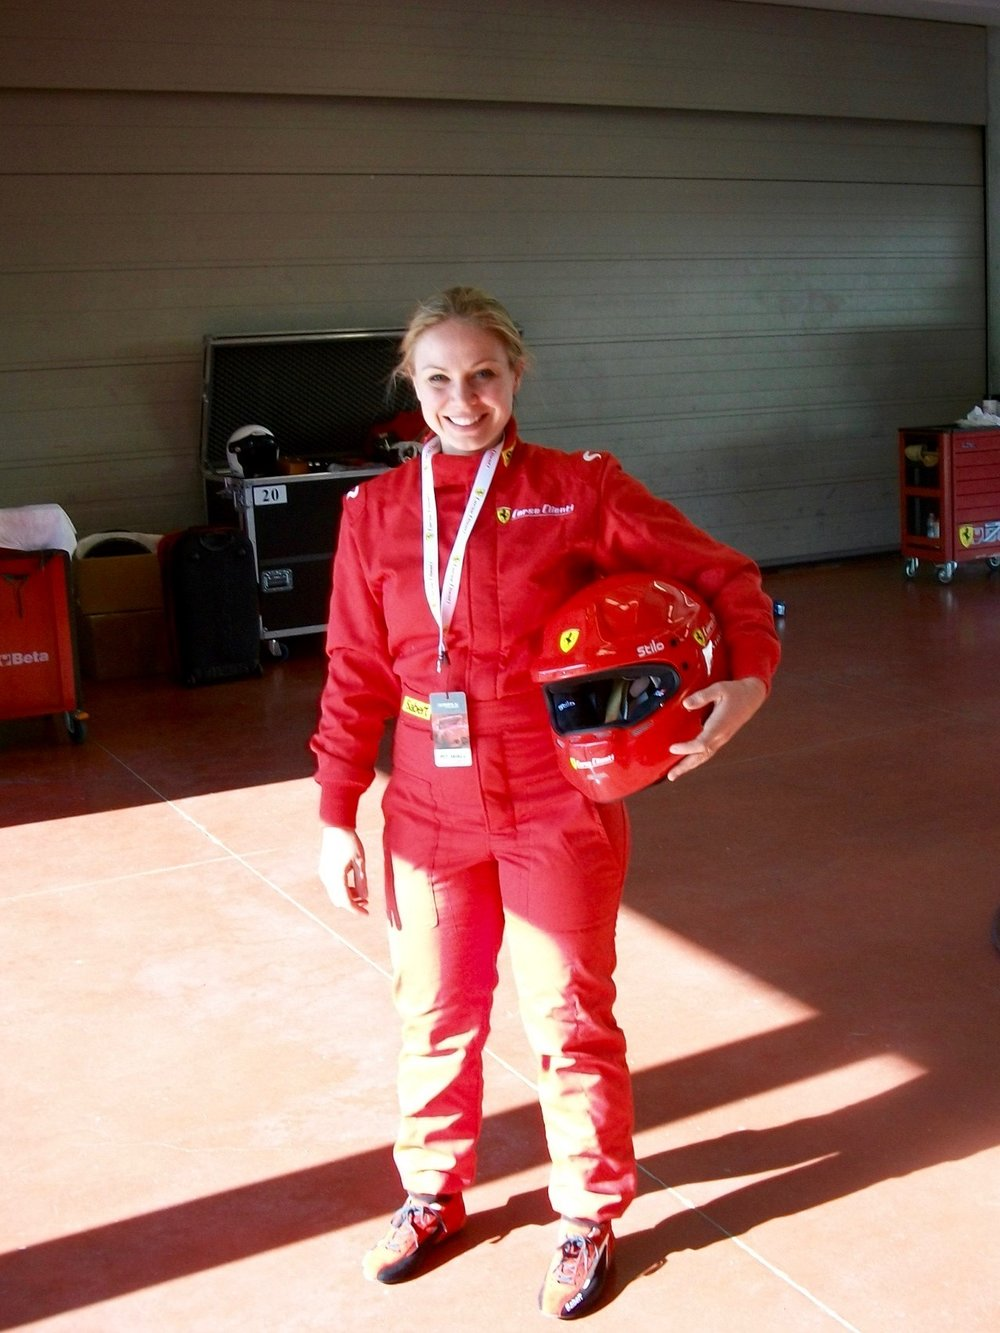 In my fire suit, ready for racing!